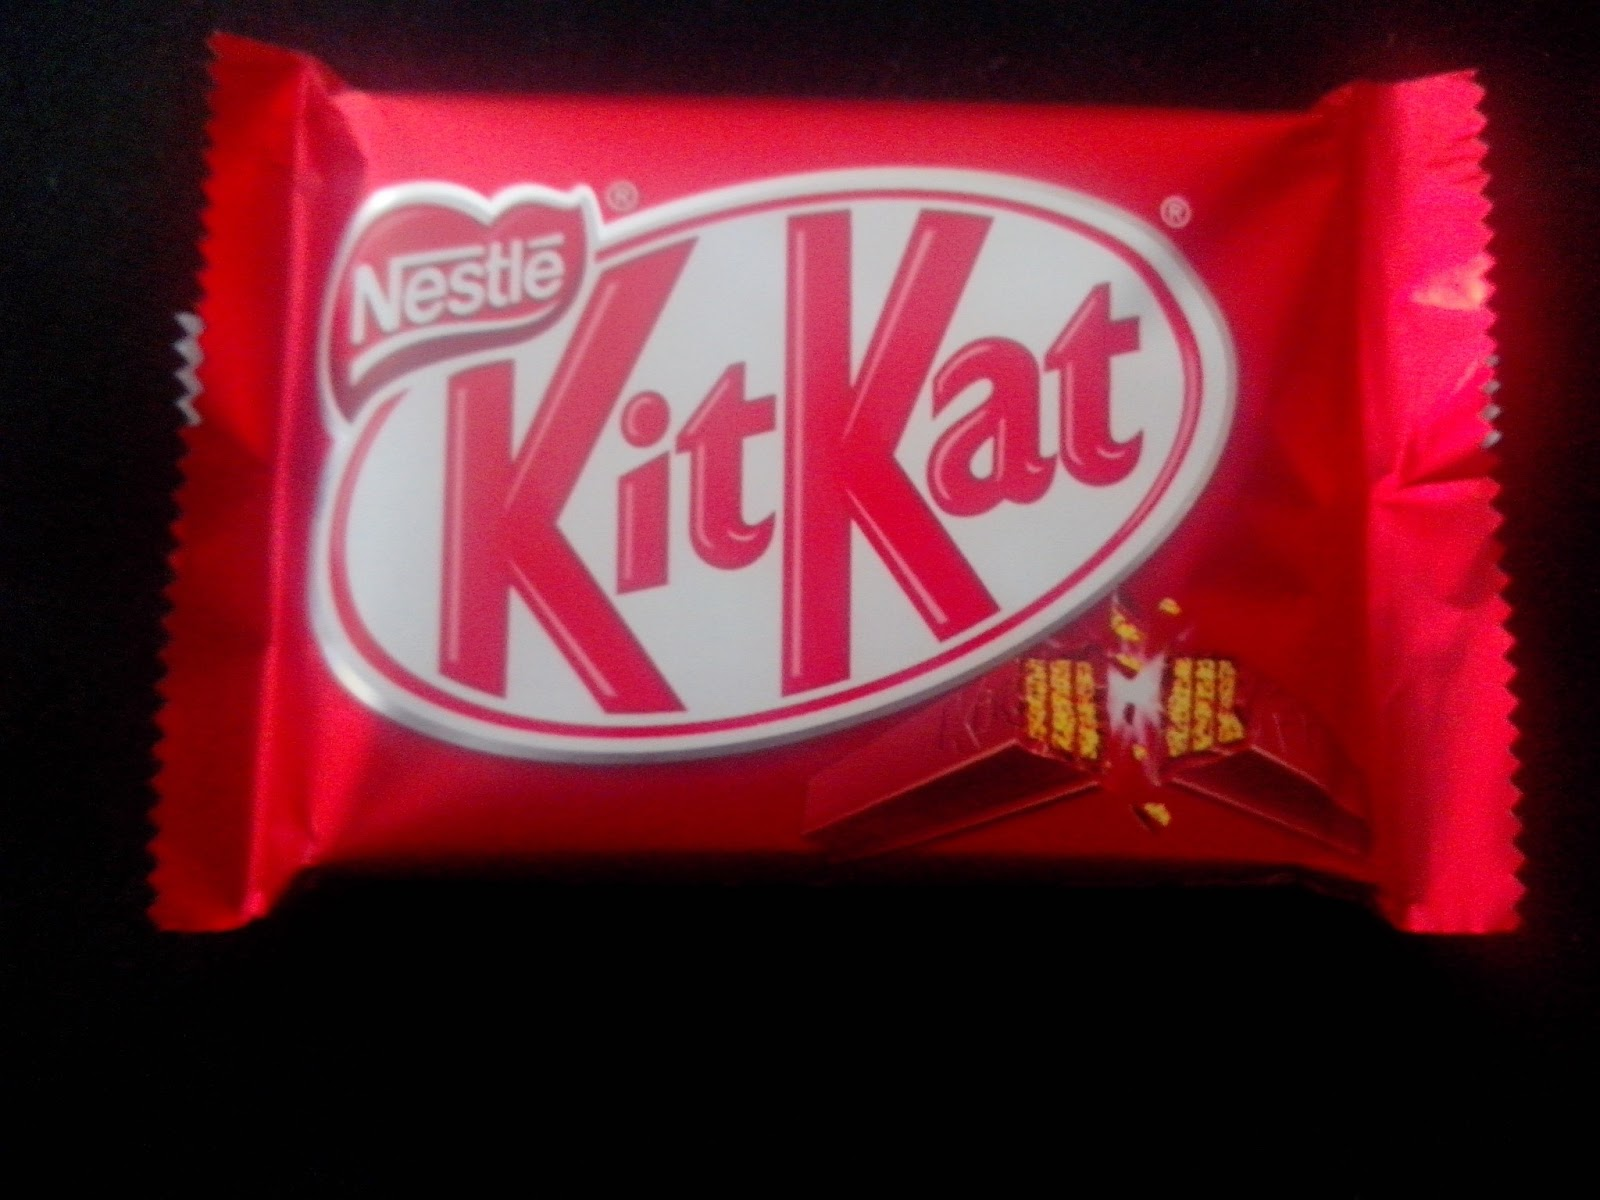 Nestle Kit Kat Chocolate My Grocery Confessions